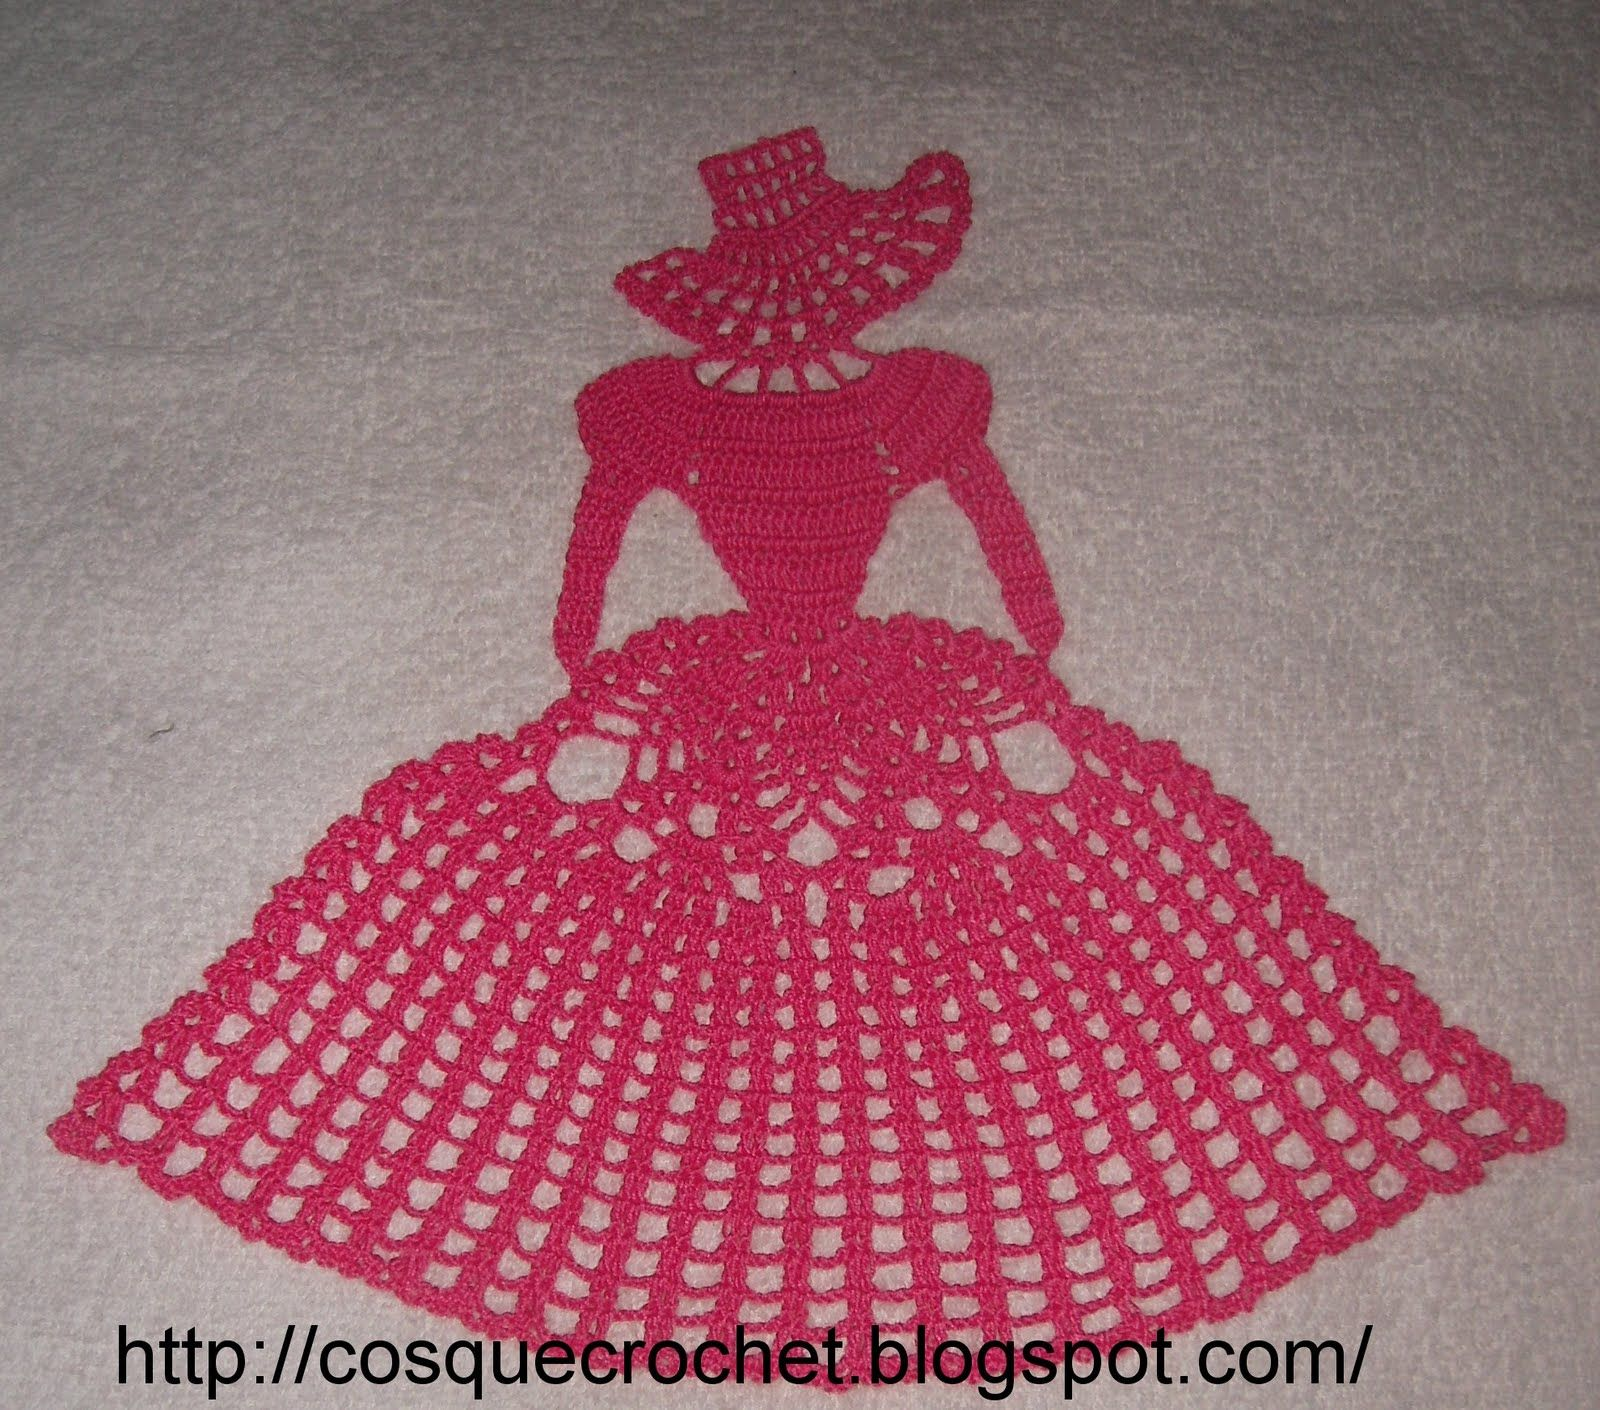 Towel/pillow doll ♥LCD♥ with diagram | Crochet y tejido ...